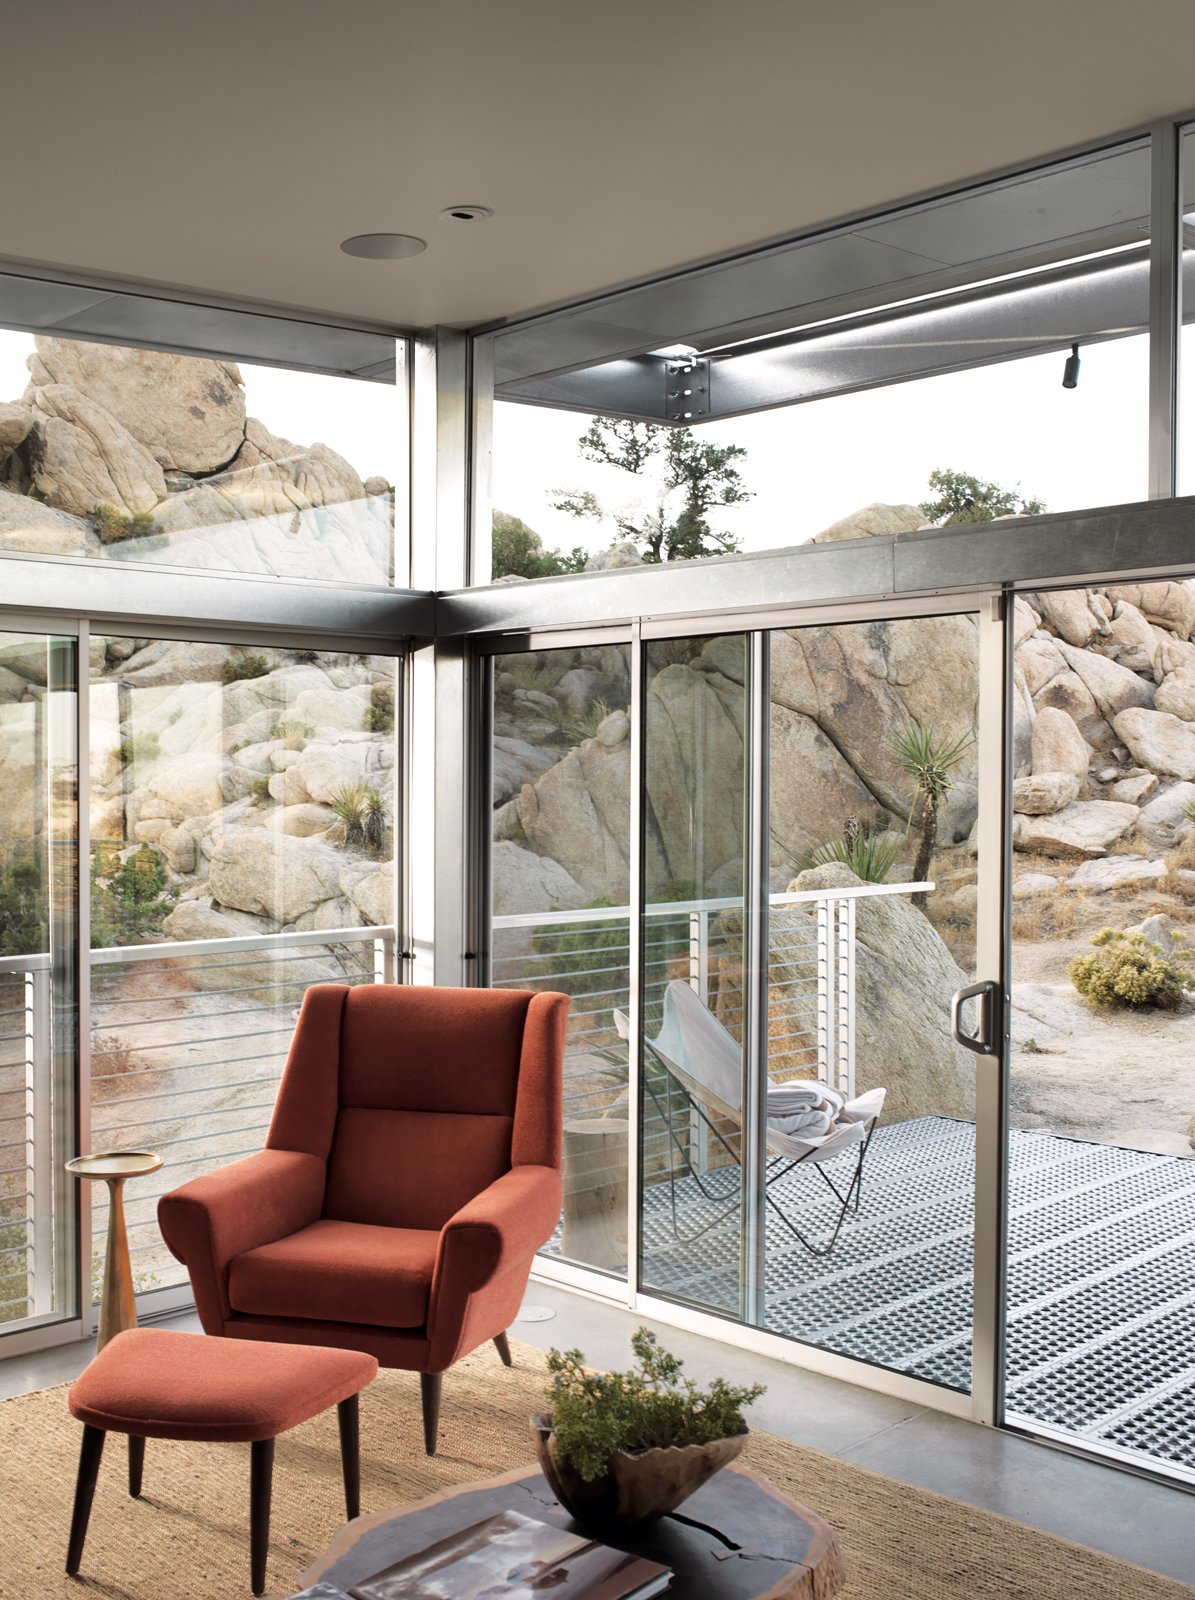 """The main living area extends to the deck through sliding glass doors.  Beautiful Prefabs by Jill Southern from Small """"Hybrid Prefab"""" Home in the Desert"""